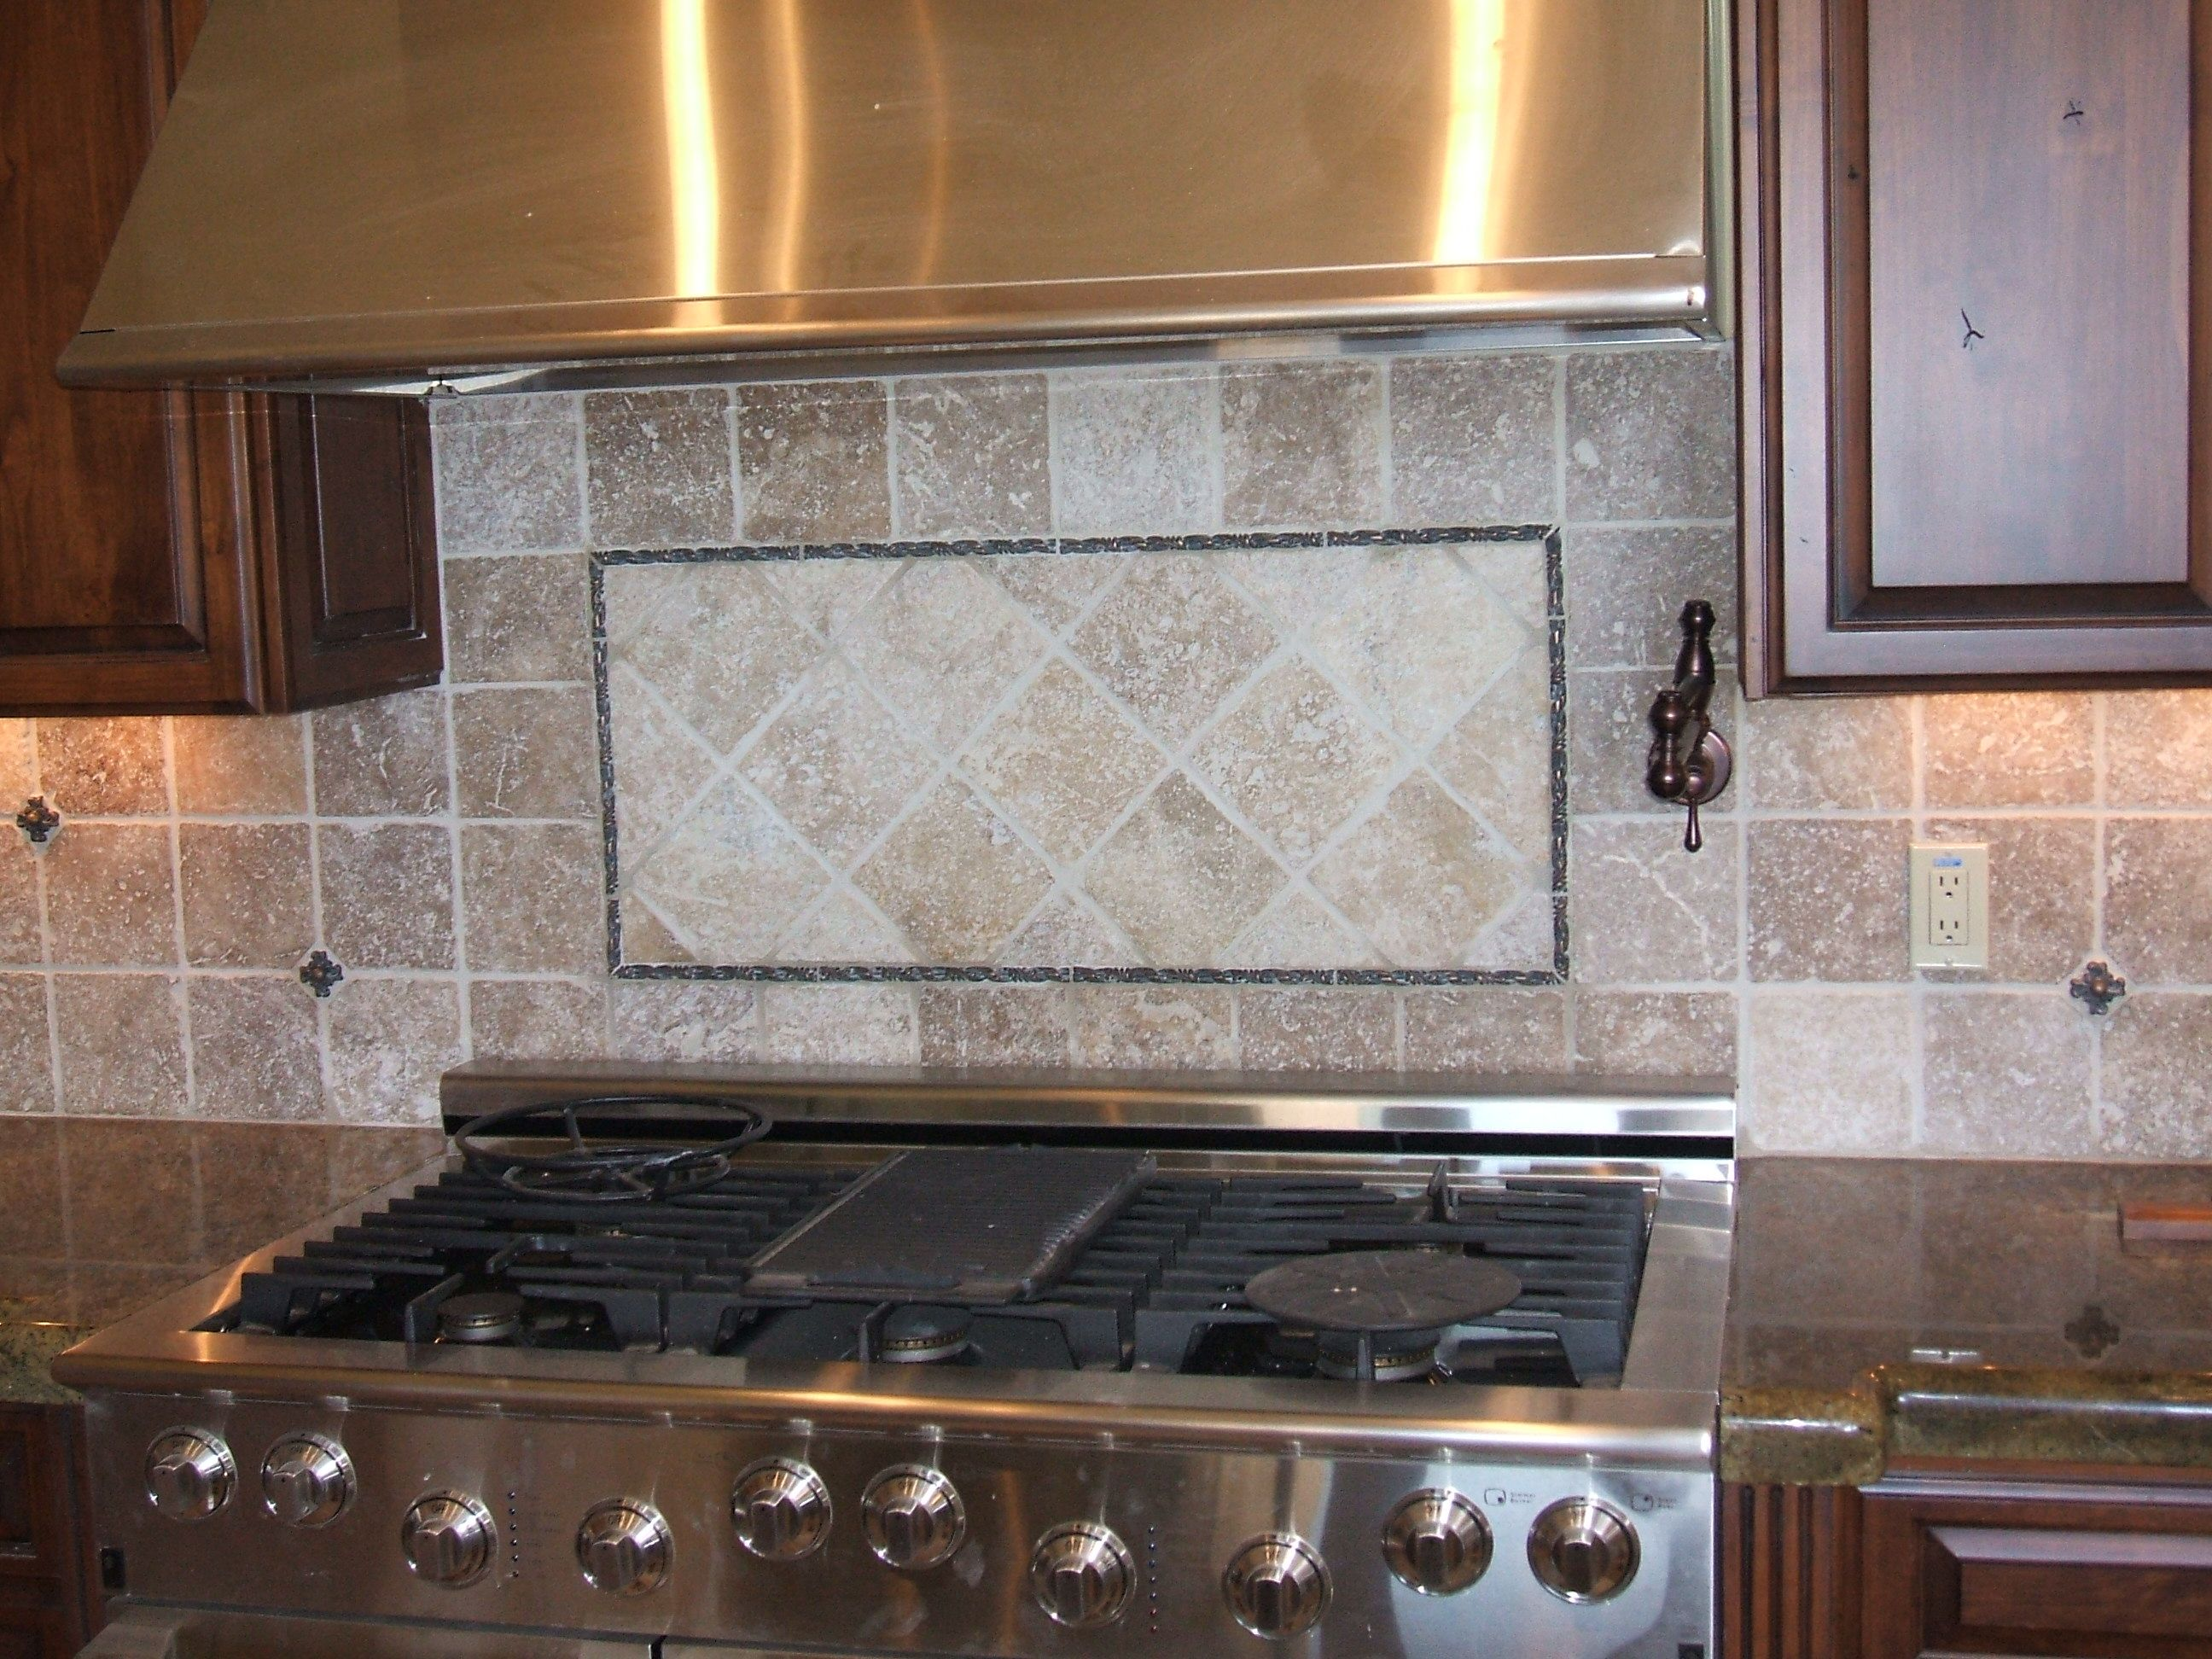 Kitchen Eye Catching Kitchen Backsplash Glass Tile Design Ideas